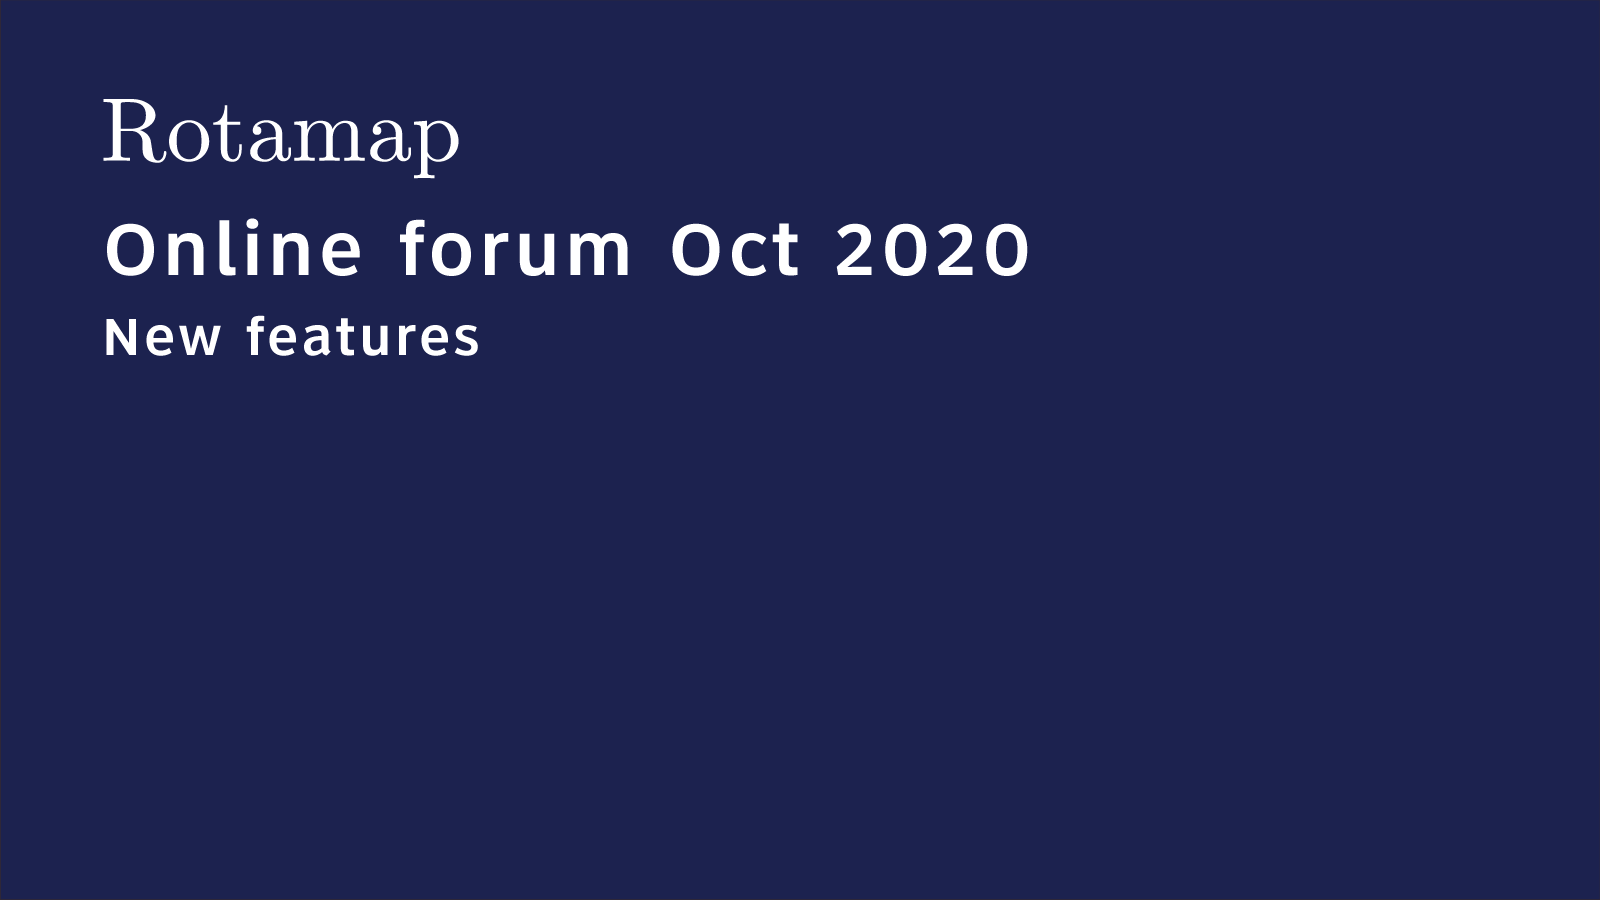 Watch the online forum new features presentation